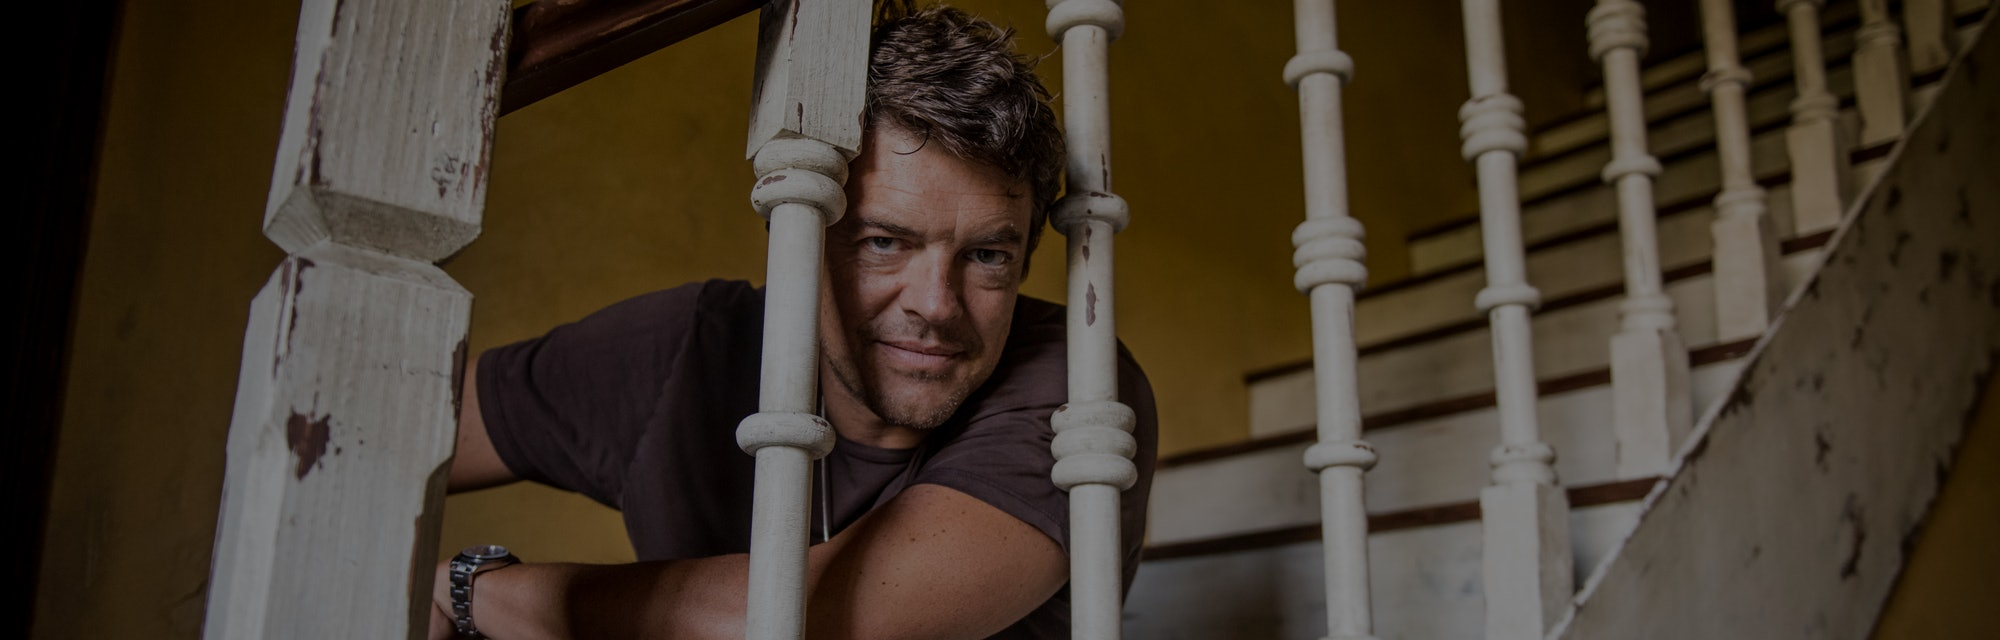 Producer Jason Blum